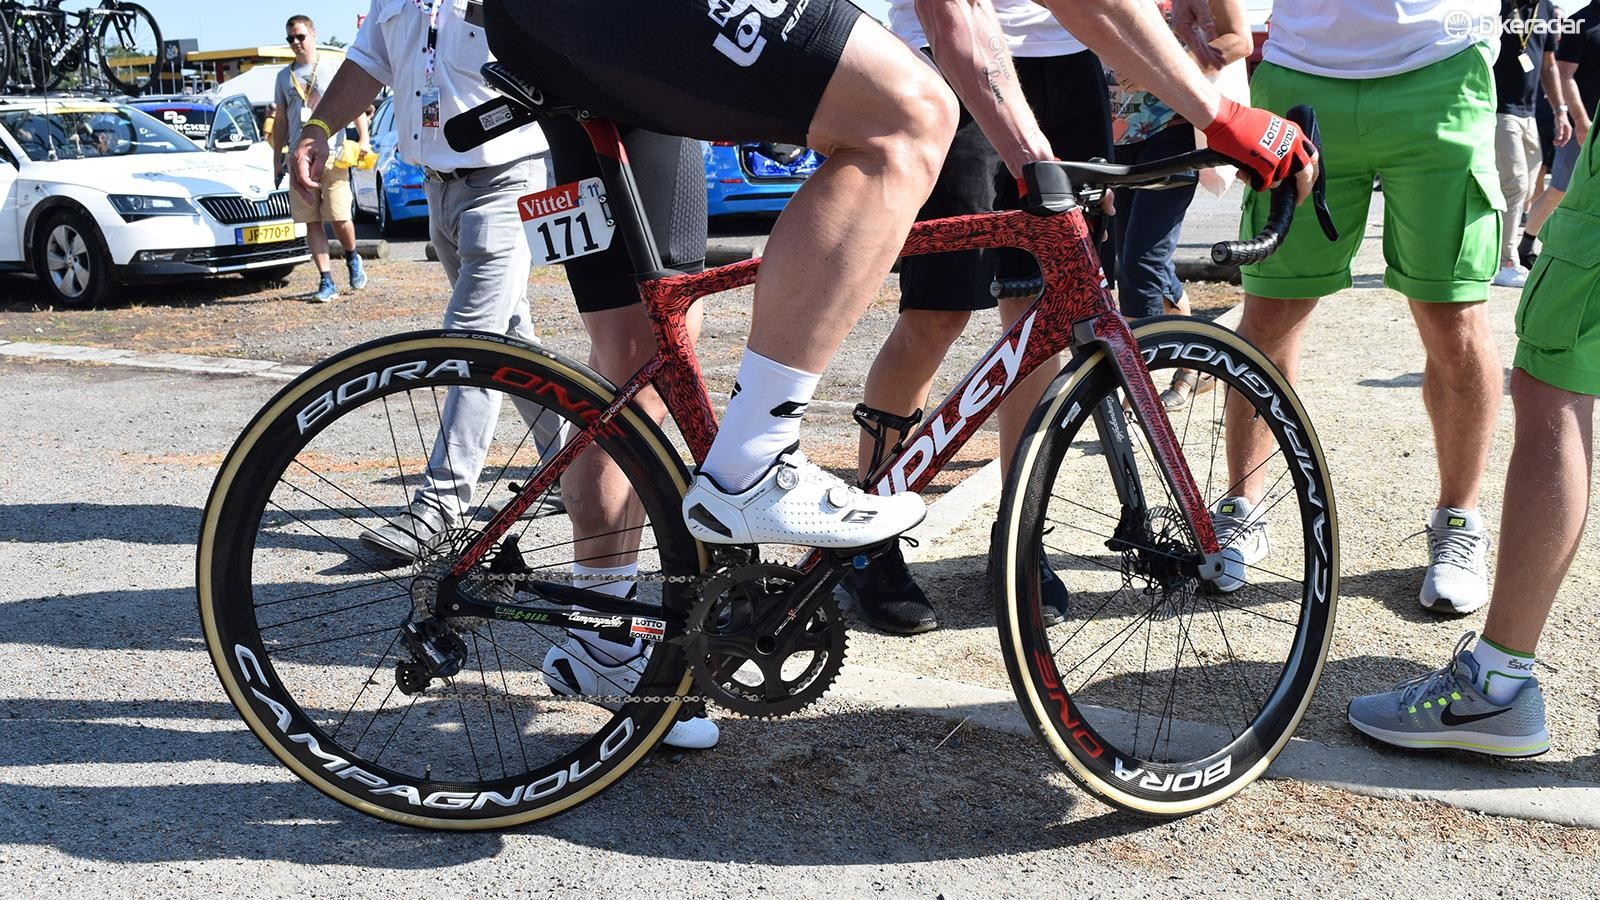 Andre Greipel raced on the new Ridley Noah aero bike equipped with Campagnolo disc brakes for the first time at the Tour de France